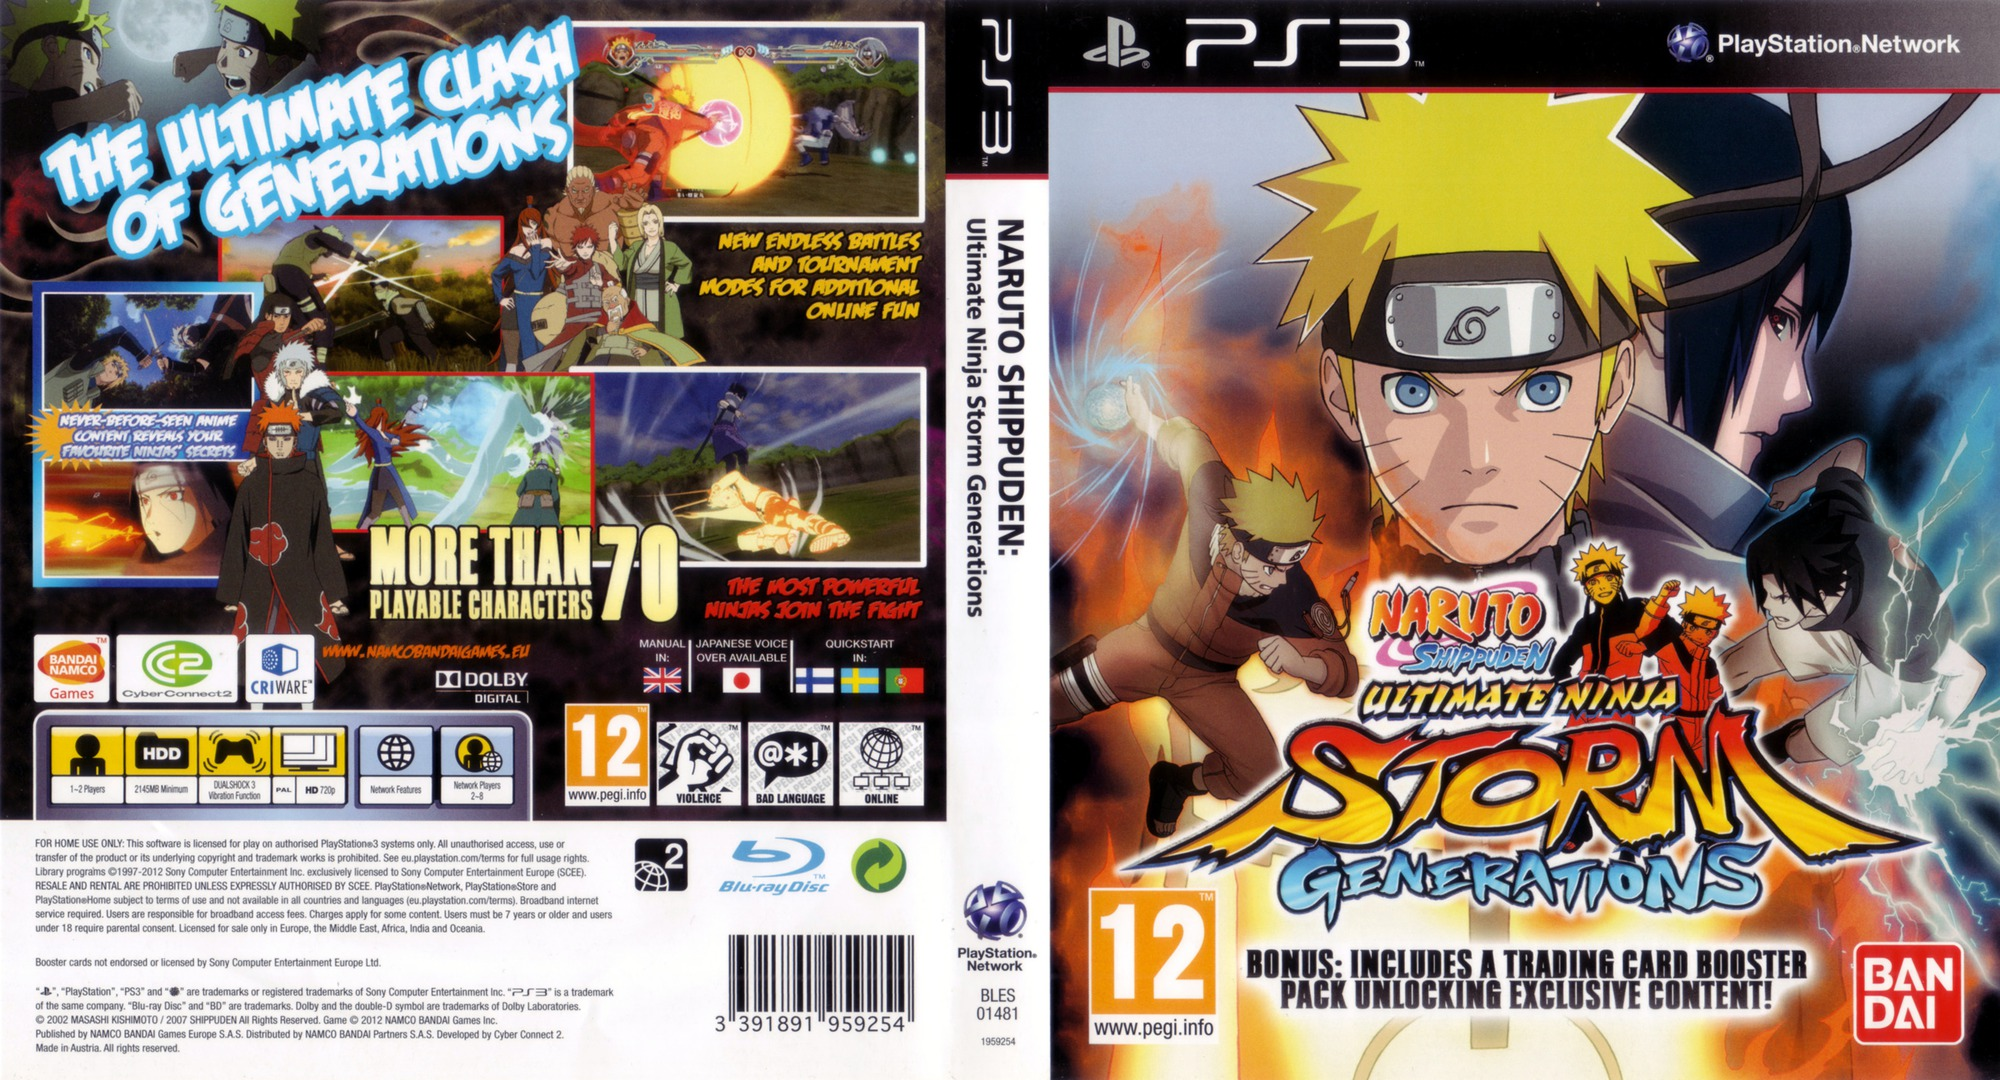 Naruto Shippuden: Ultimate Ninja Storm Generations PS3 coverfullHQ (BLES01481)